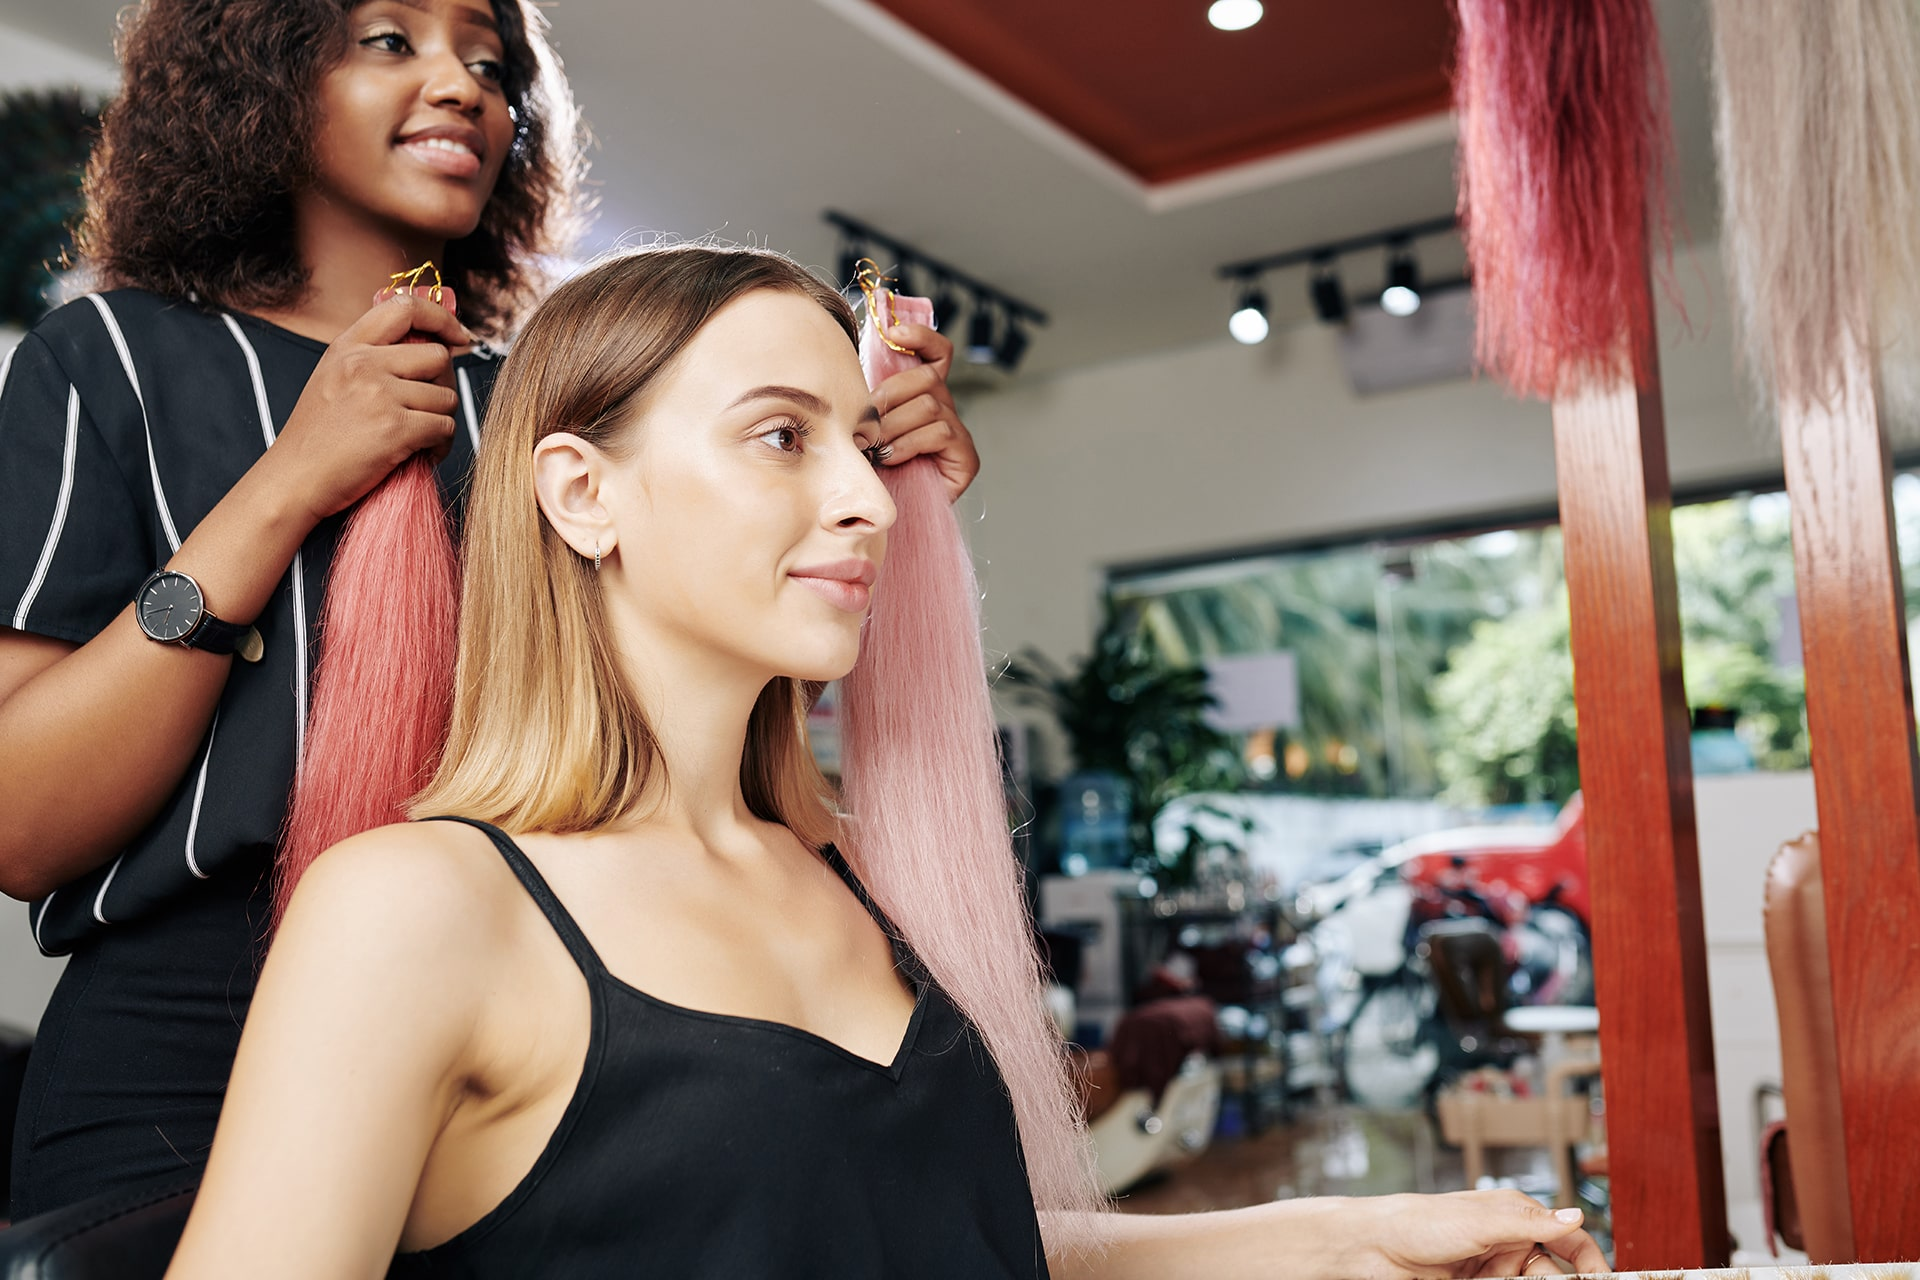 Hairstylist Choosing Best Colorful Extensions - SolVibrations